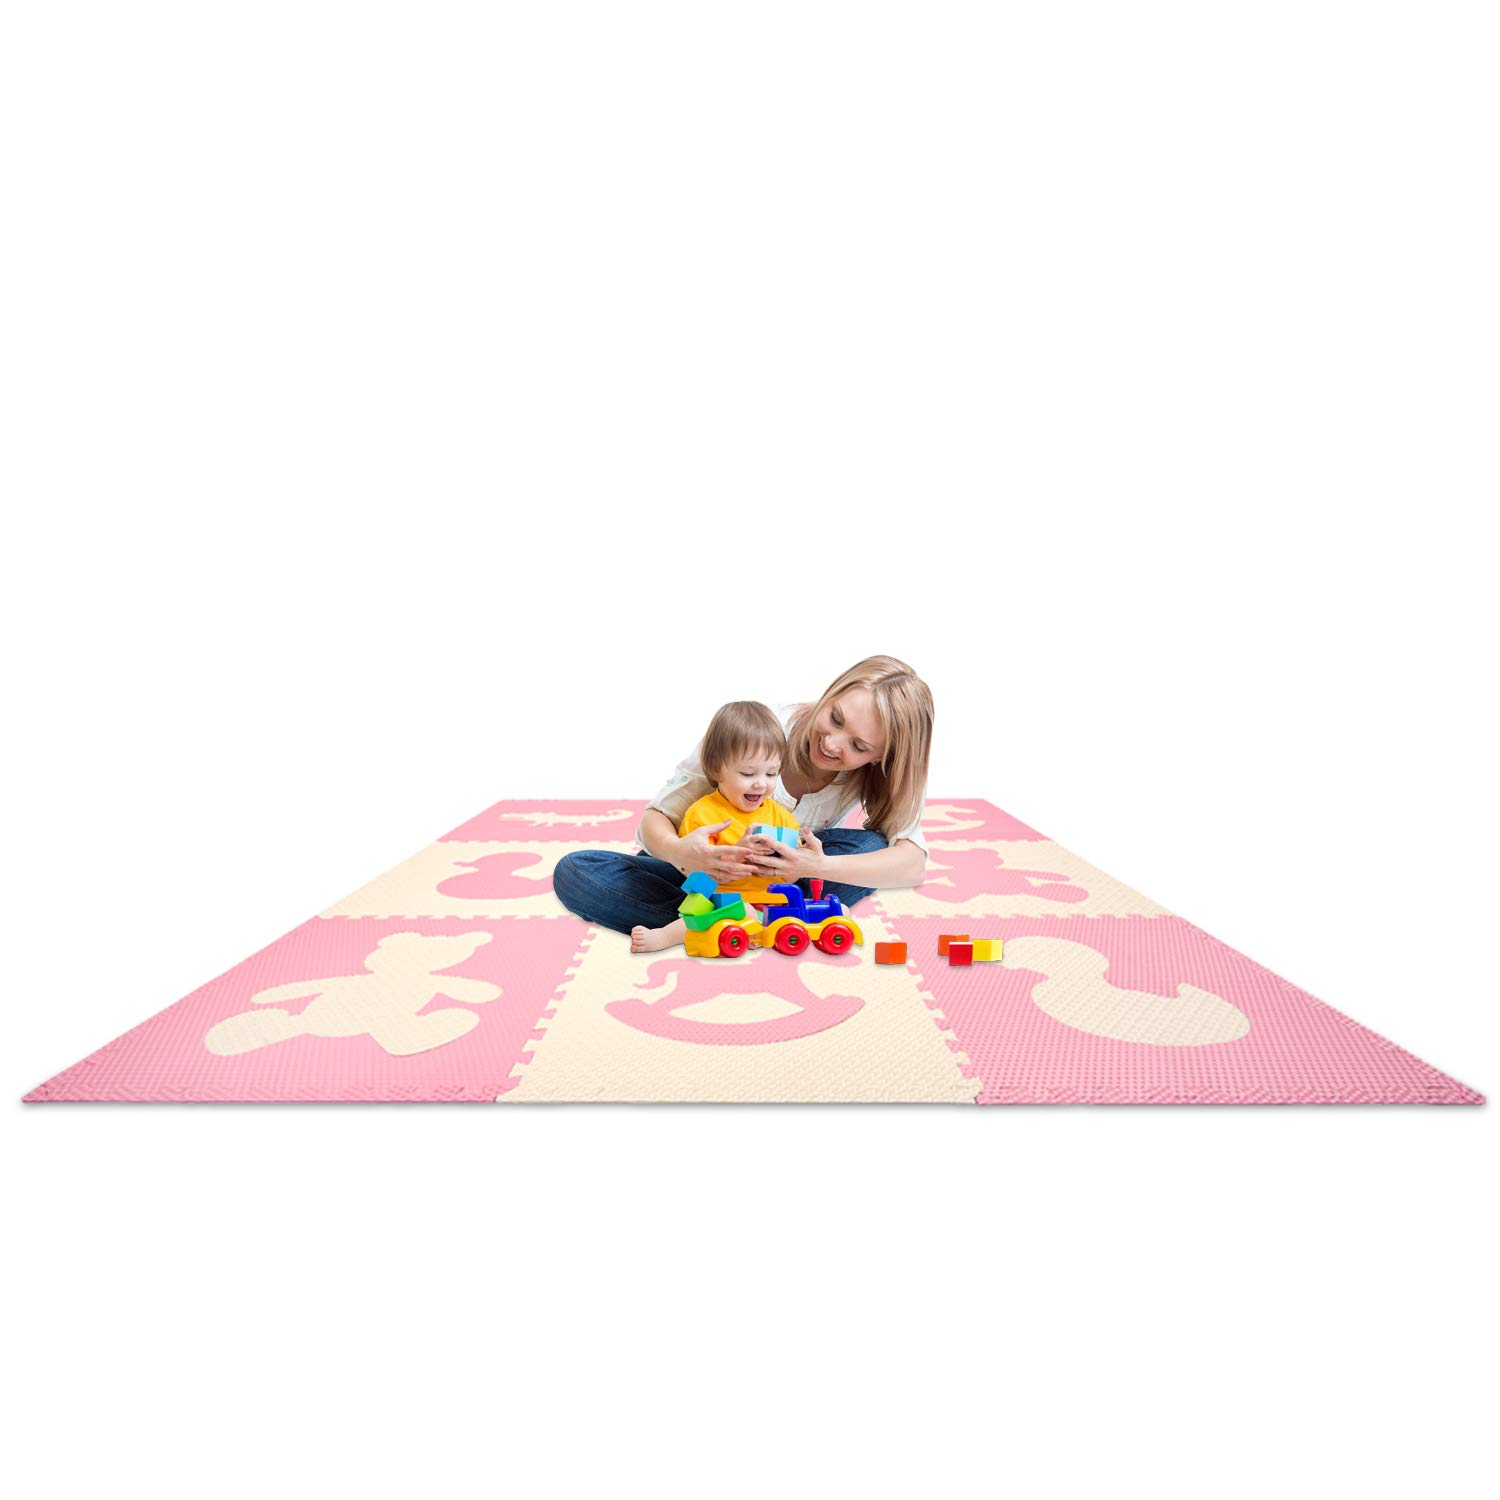 Kids Puzzle Exercise Play Mat with Textures Borders Jumbo Size 73 x 73 Large Floor Tiles